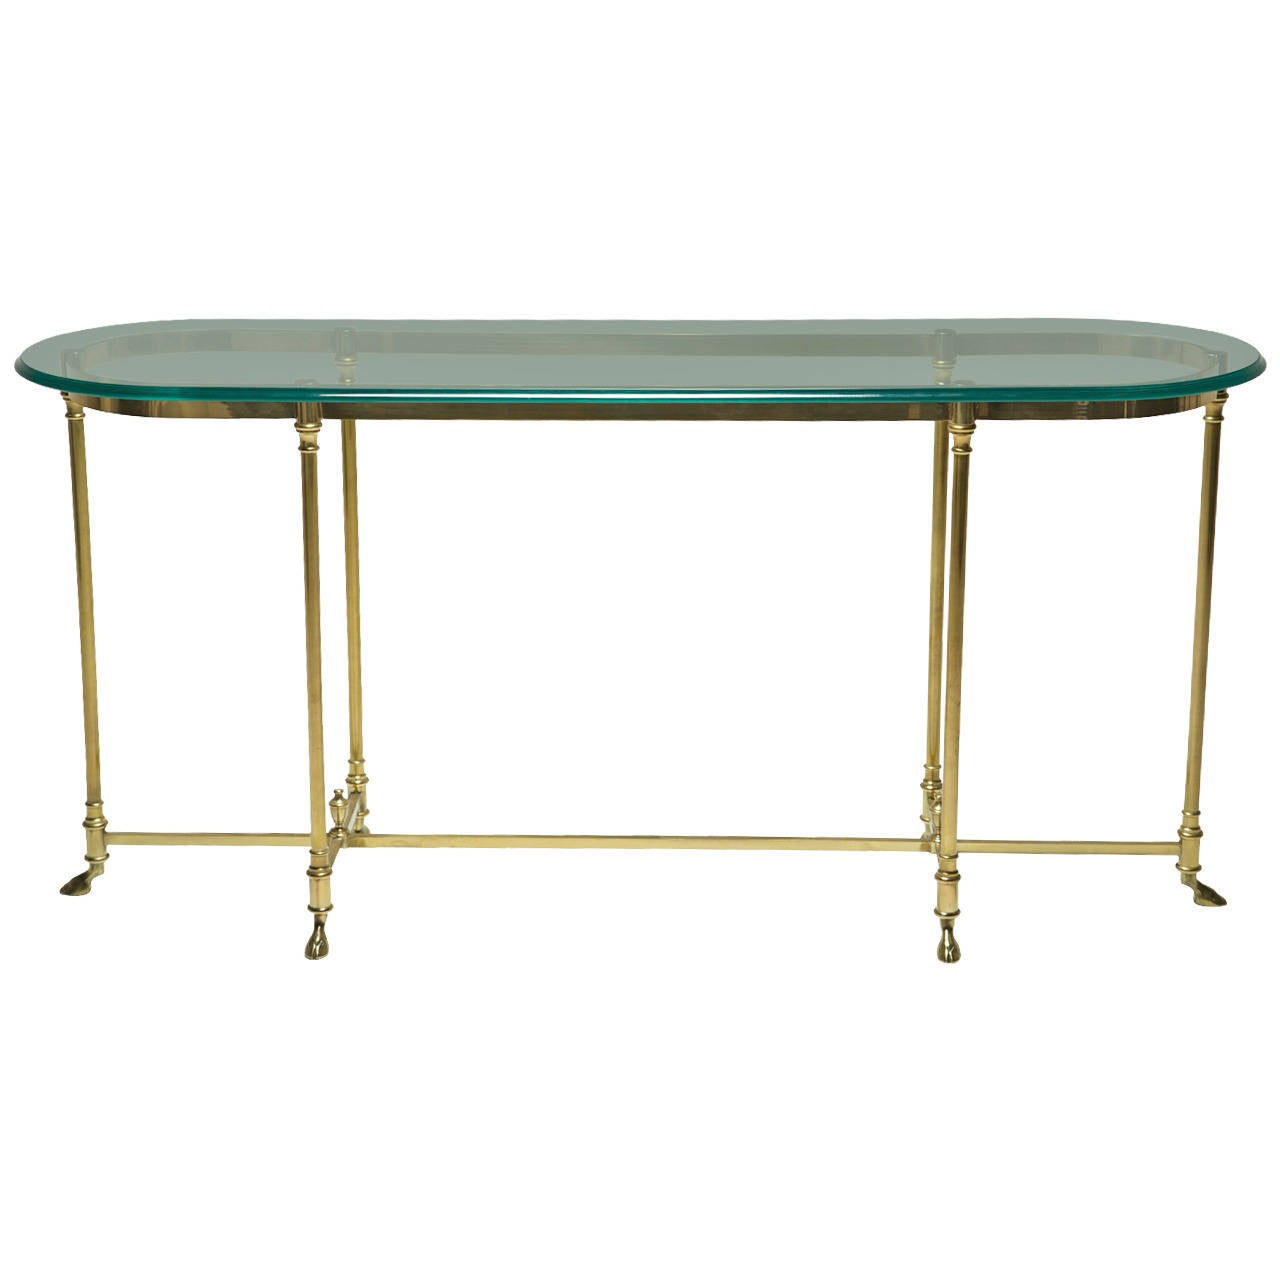 A Brass Labarge Hollywood Regency Console Table With Hoof Feet 1